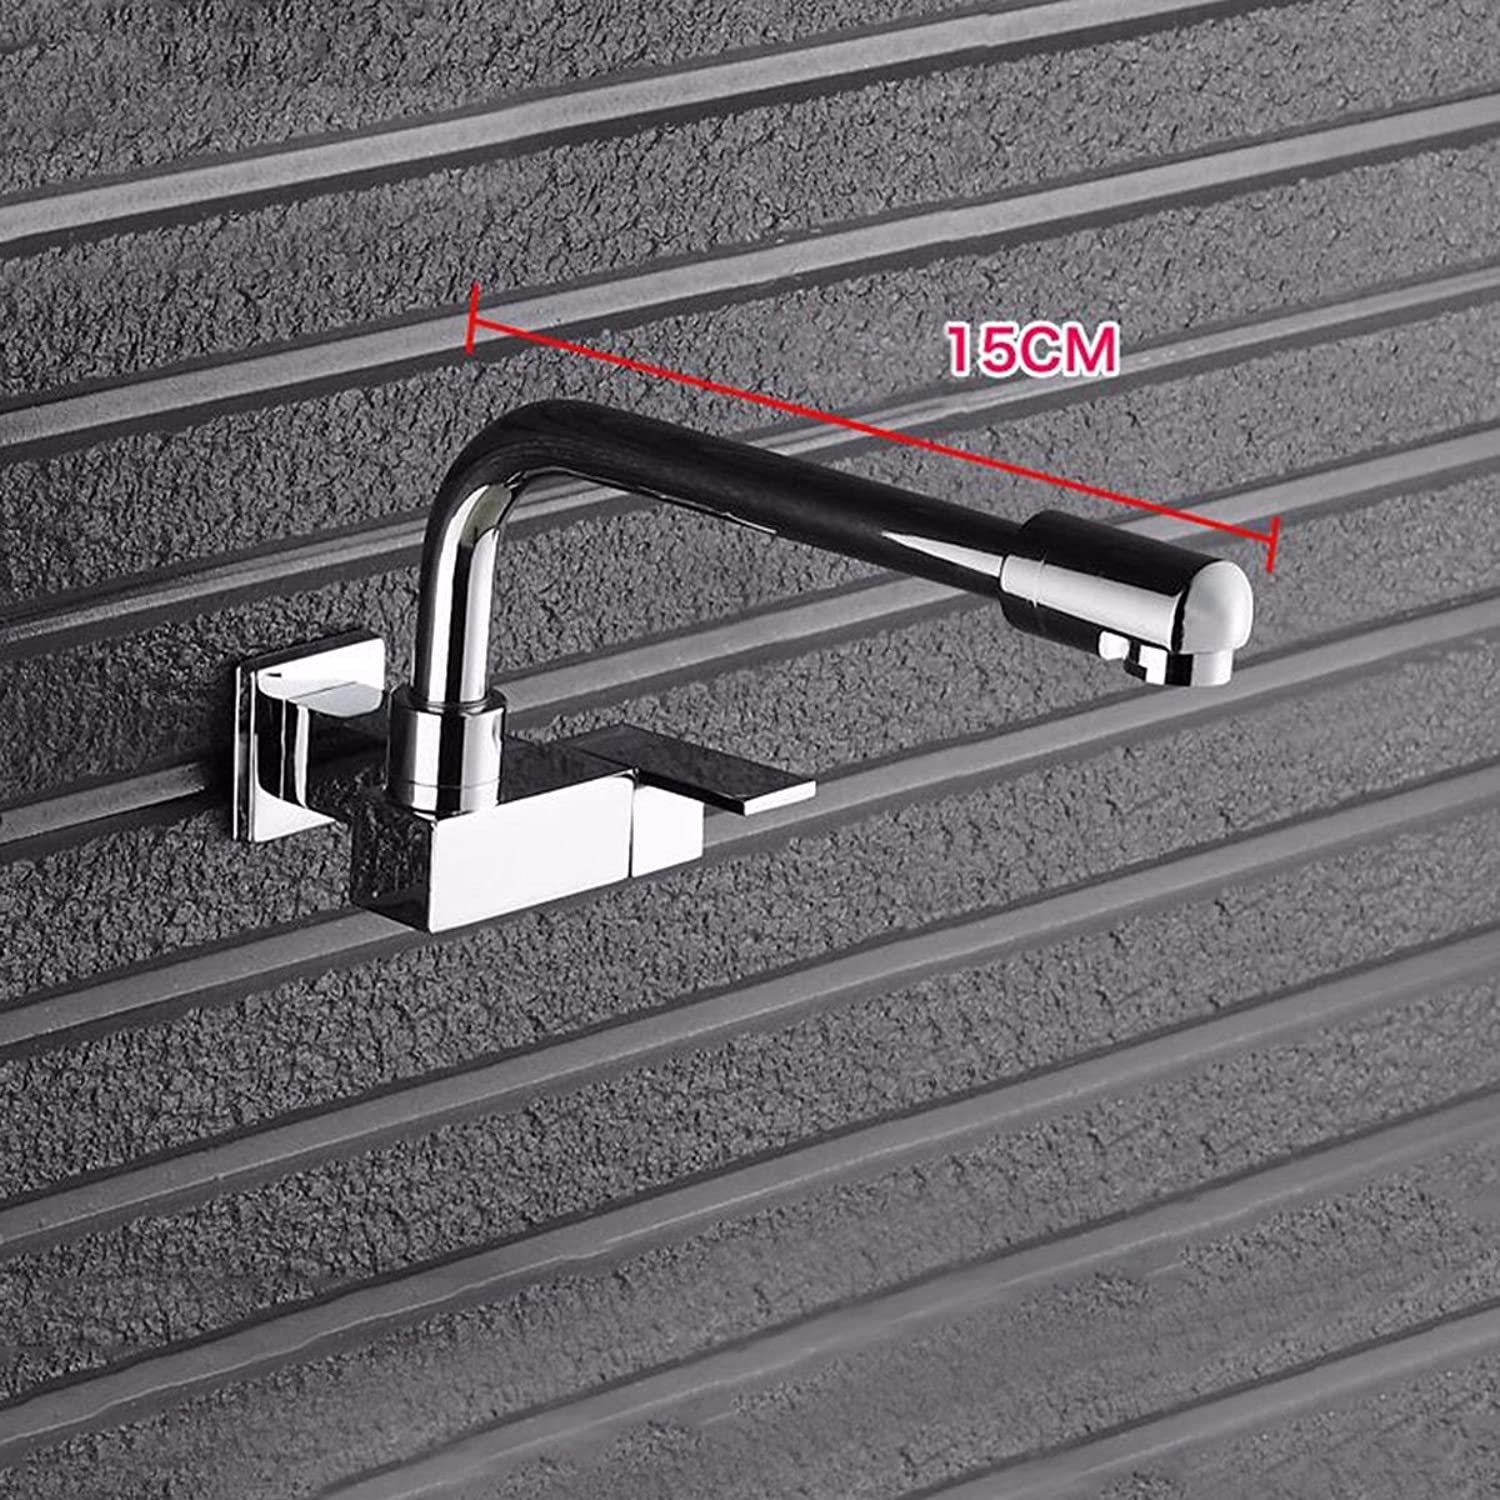 Kitchen Faucet Lengthen Mop Pool Faucet Into Wall Type Single Cold Balcony, Laundry Pool, Mop Pool, Kitchen Washing Basin, Water Faucet,C2